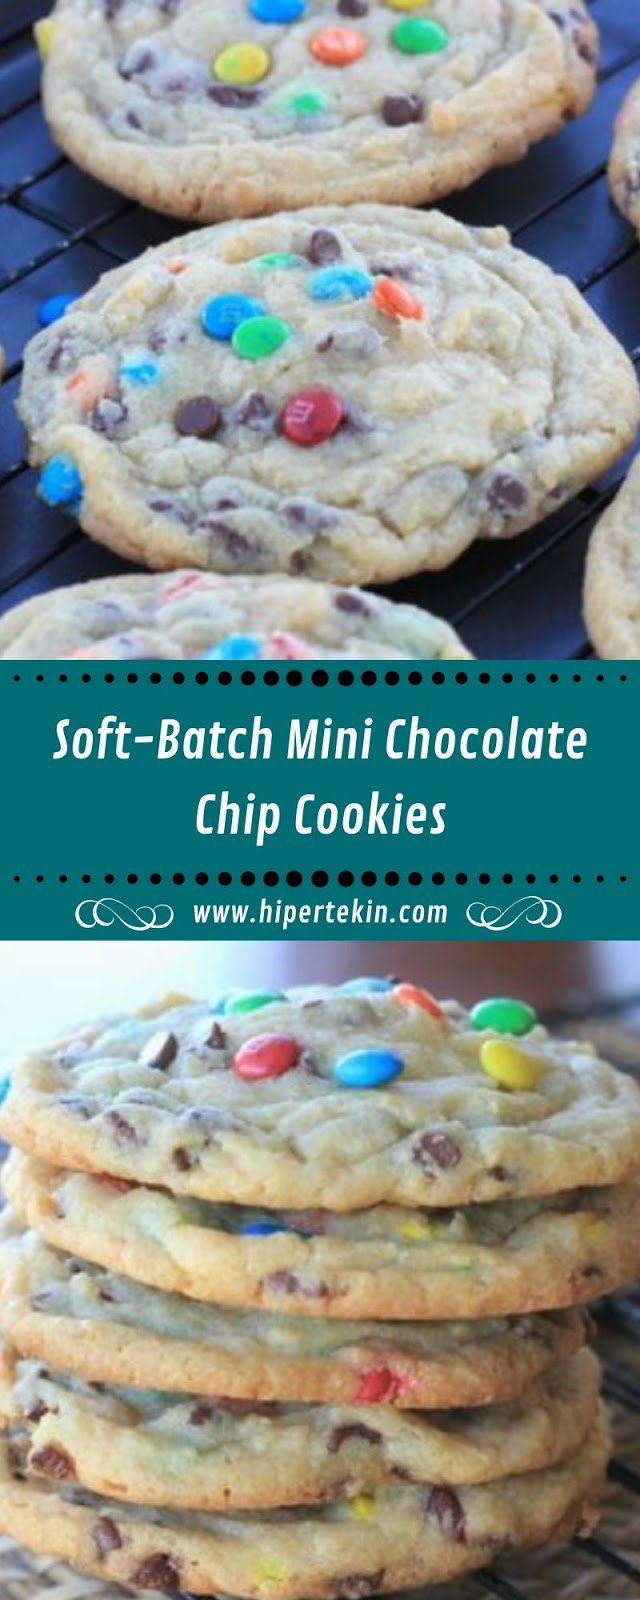 Soft-Batch Mini Chocolate Chip Cookies